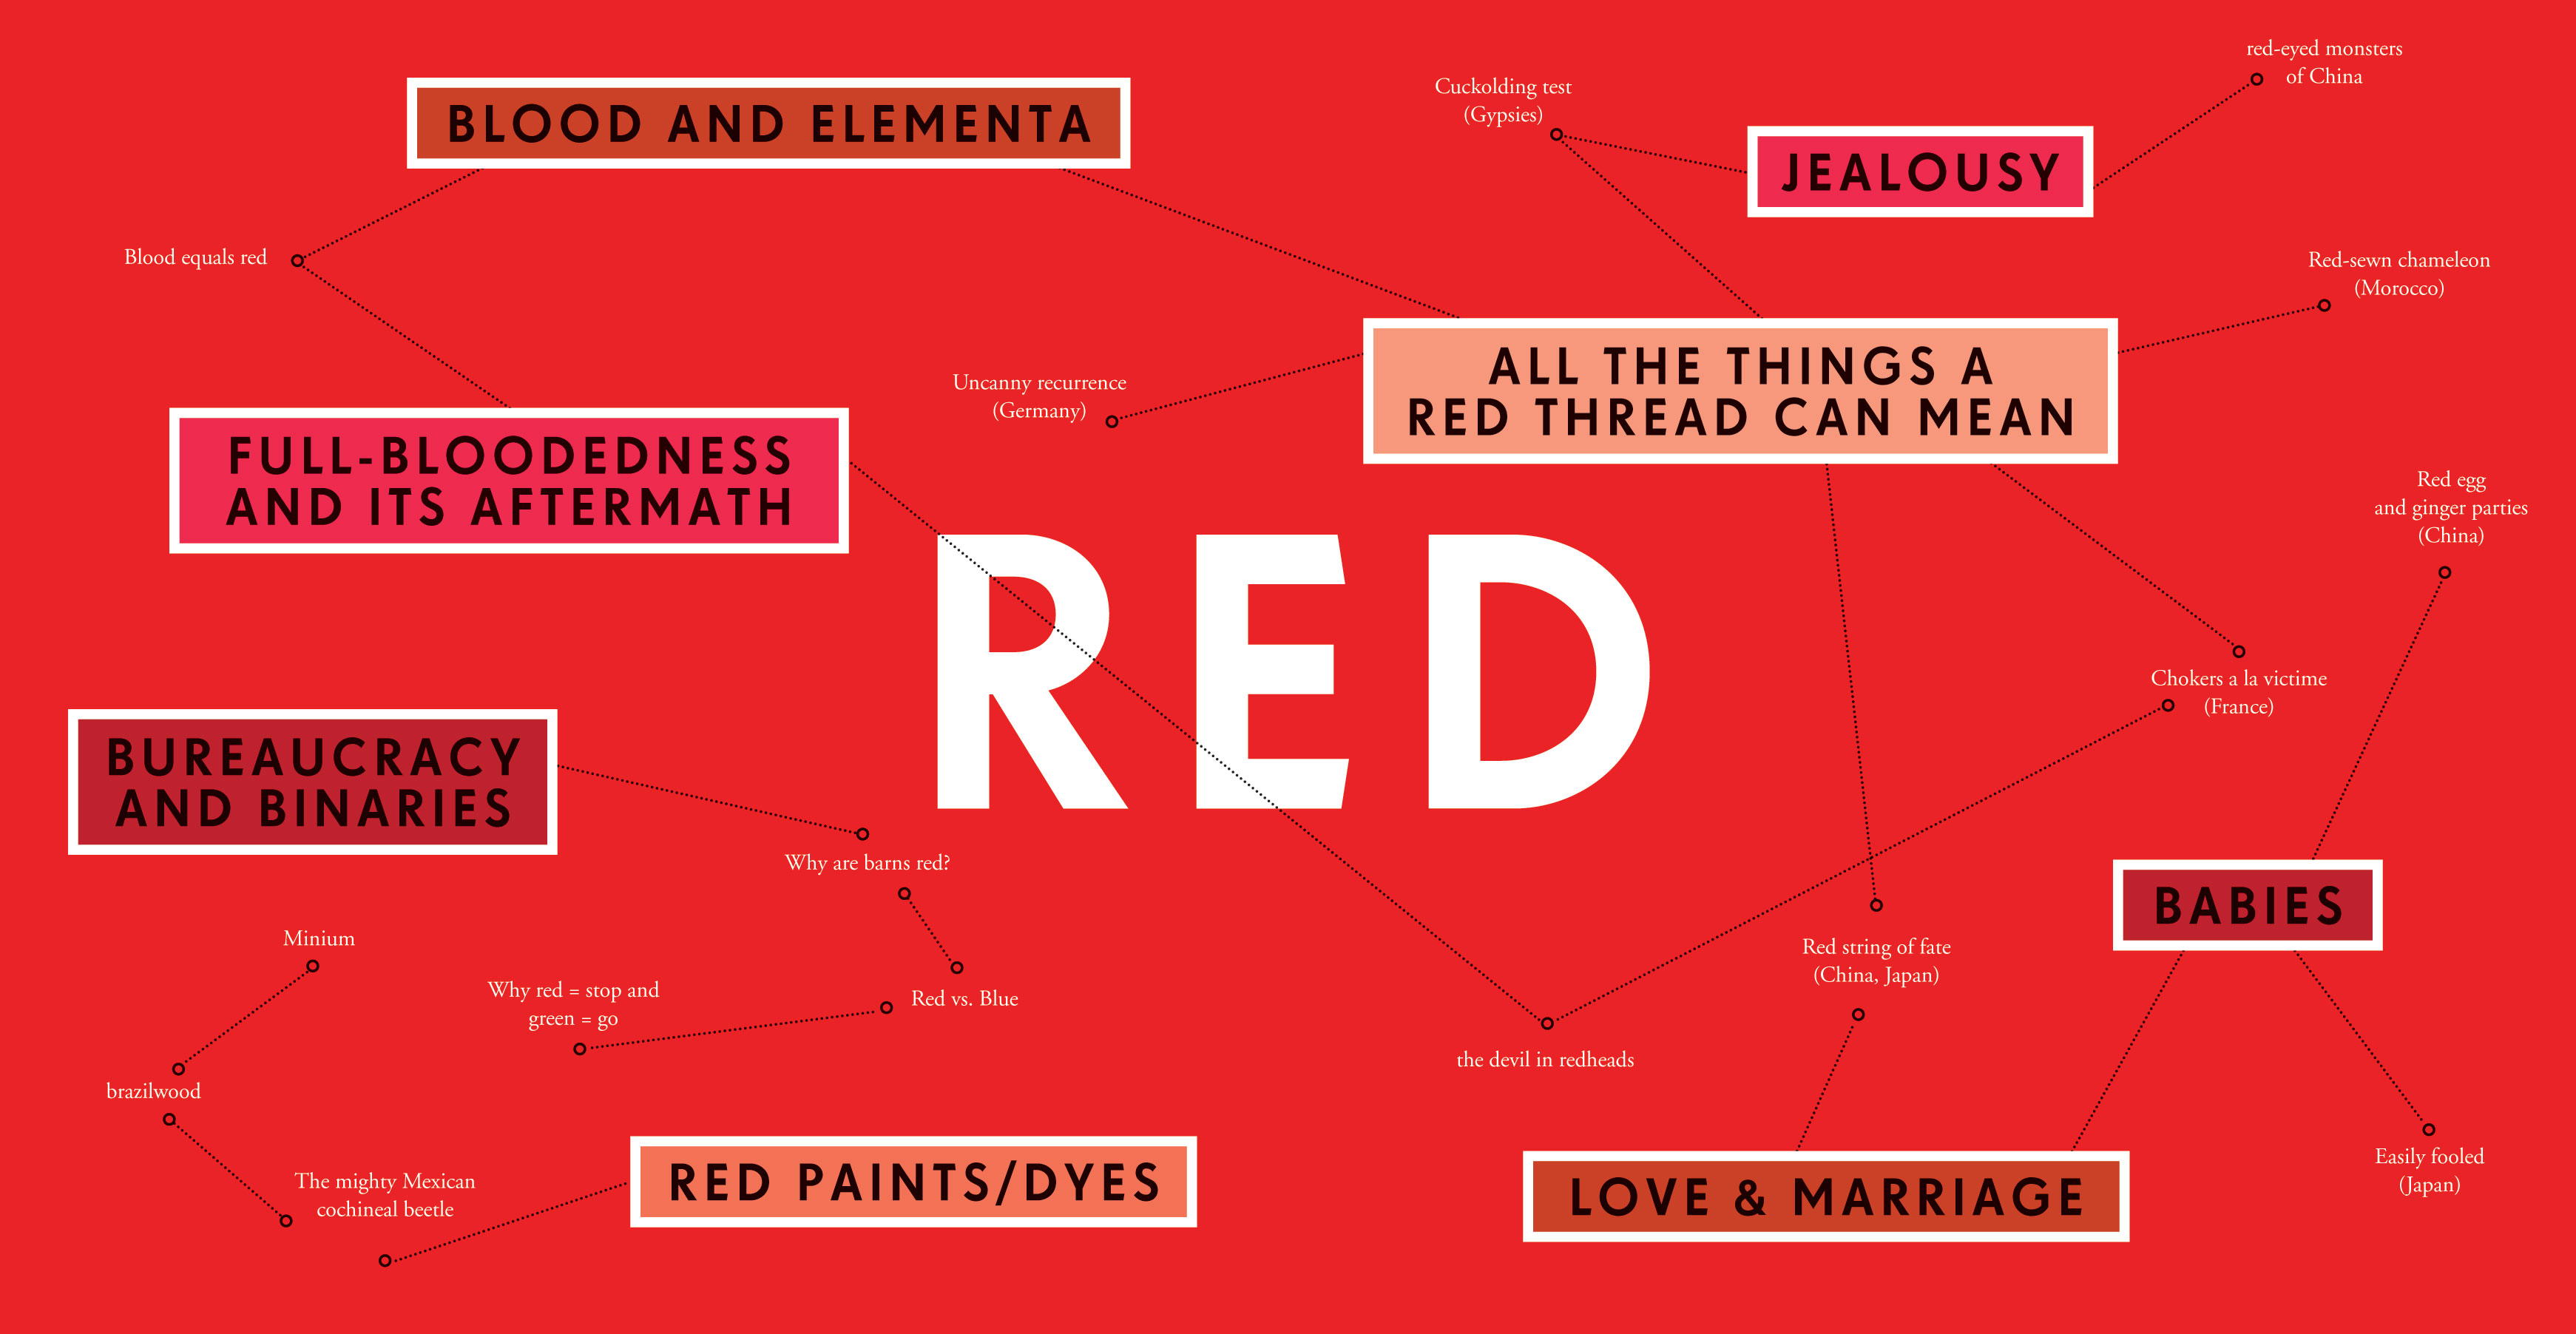 Book about color red - From The Red Chapter In Roy G Biv An Exceedingly Surprising Book About Color